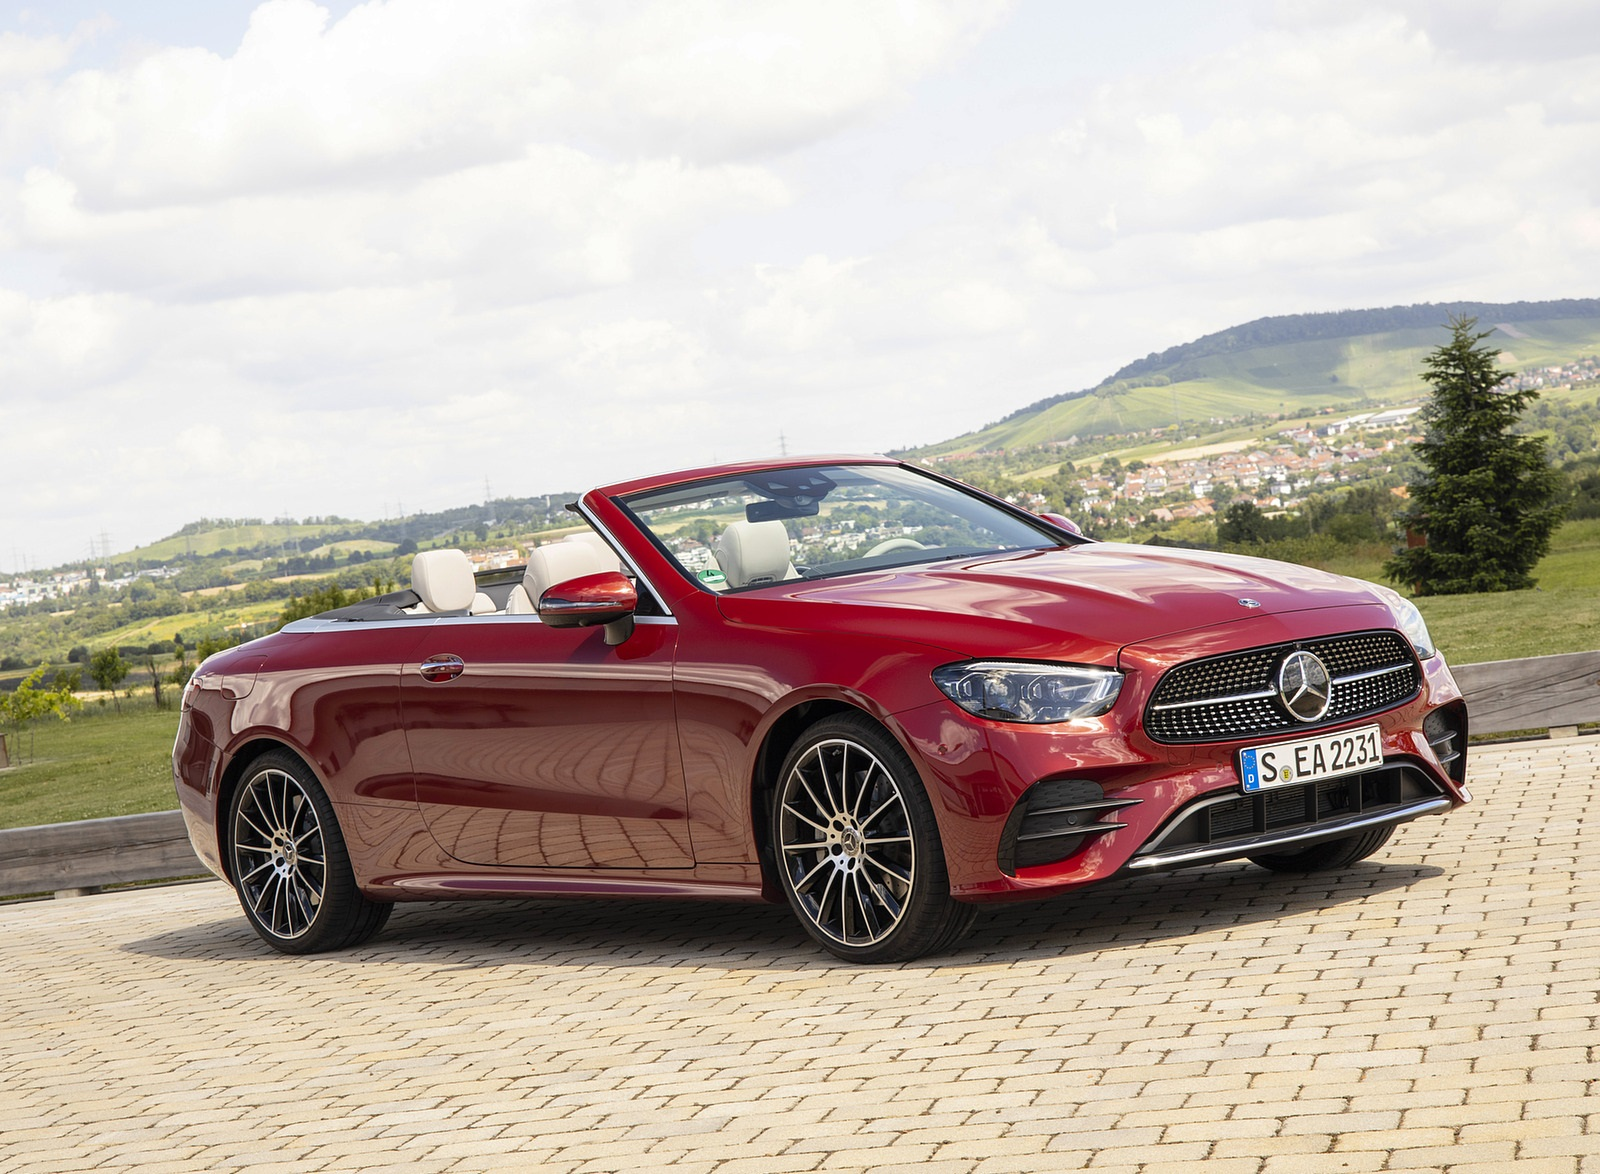 2021 Mercedes-Benz E 450 4MATIC Cabriolet (Color: Patagonia Red) Front Three-Quarter Wallpapers (5)